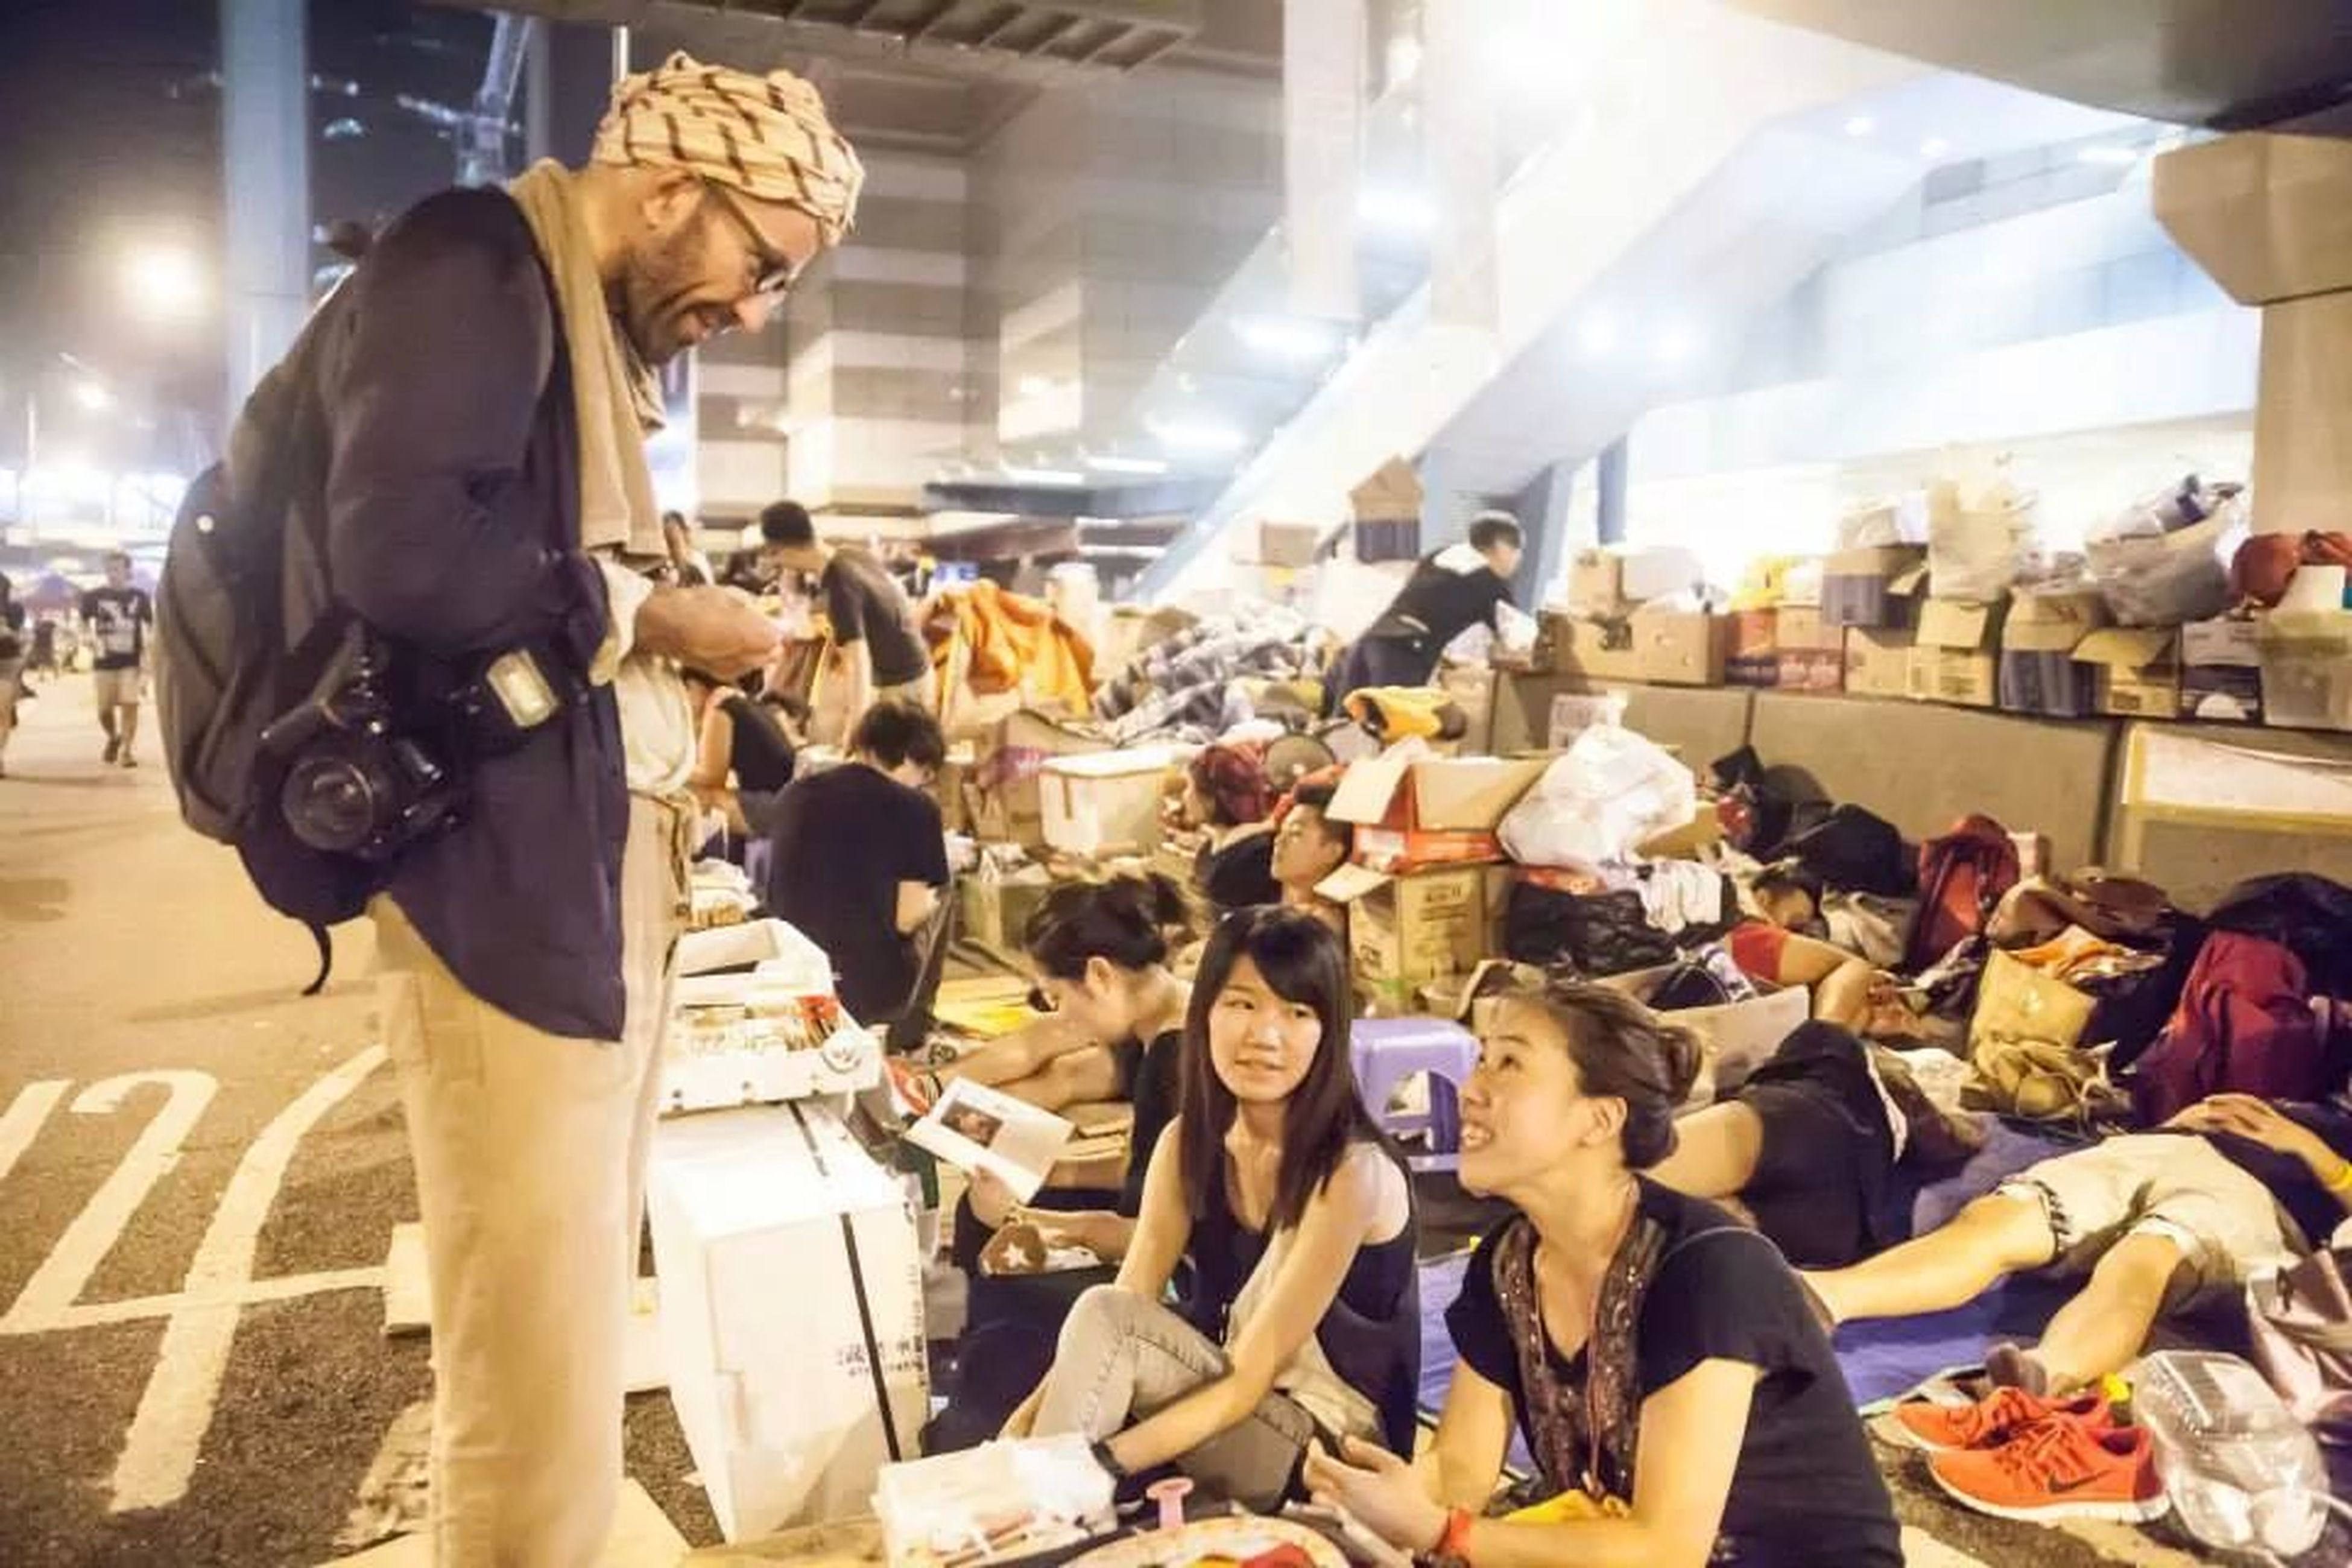 indoors, men, person, lifestyles, large group of people, leisure activity, sitting, retail, standing, shopping, medium group of people, market, for sale, store, crowd, market stall, casual clothing, consumerism